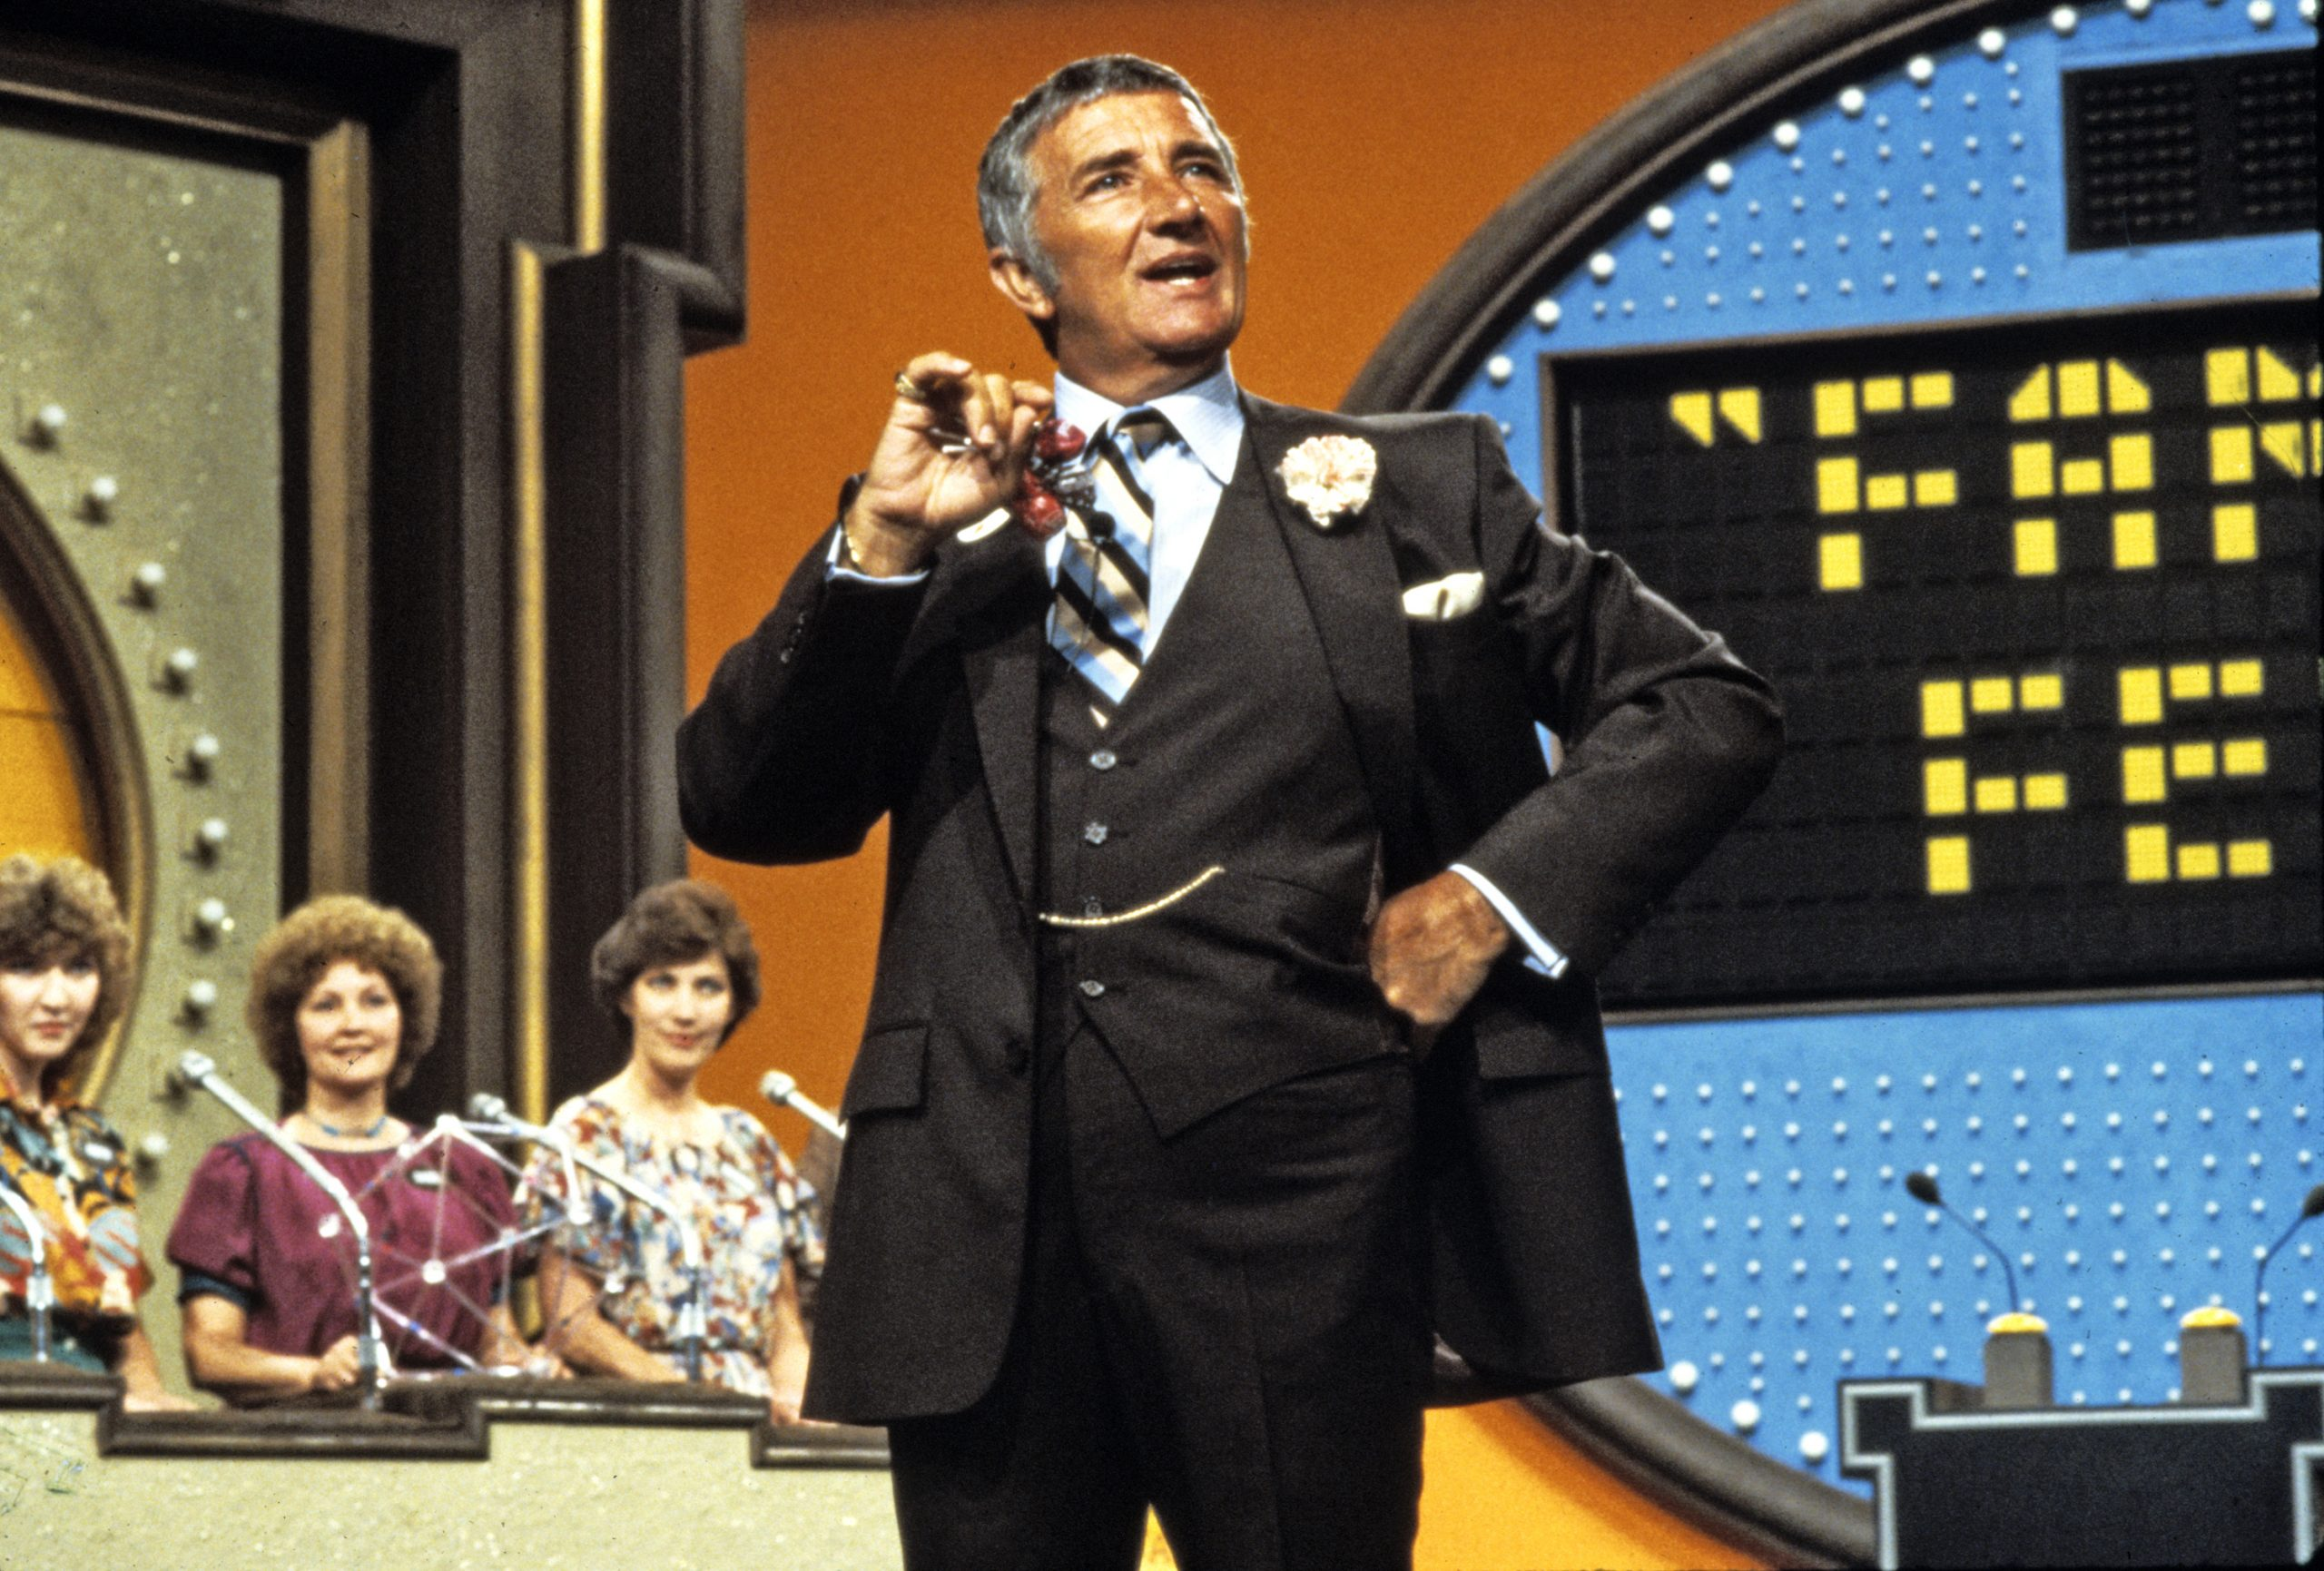 TEST YOURSELF: Can You Identify These TV Game Show Hosts?